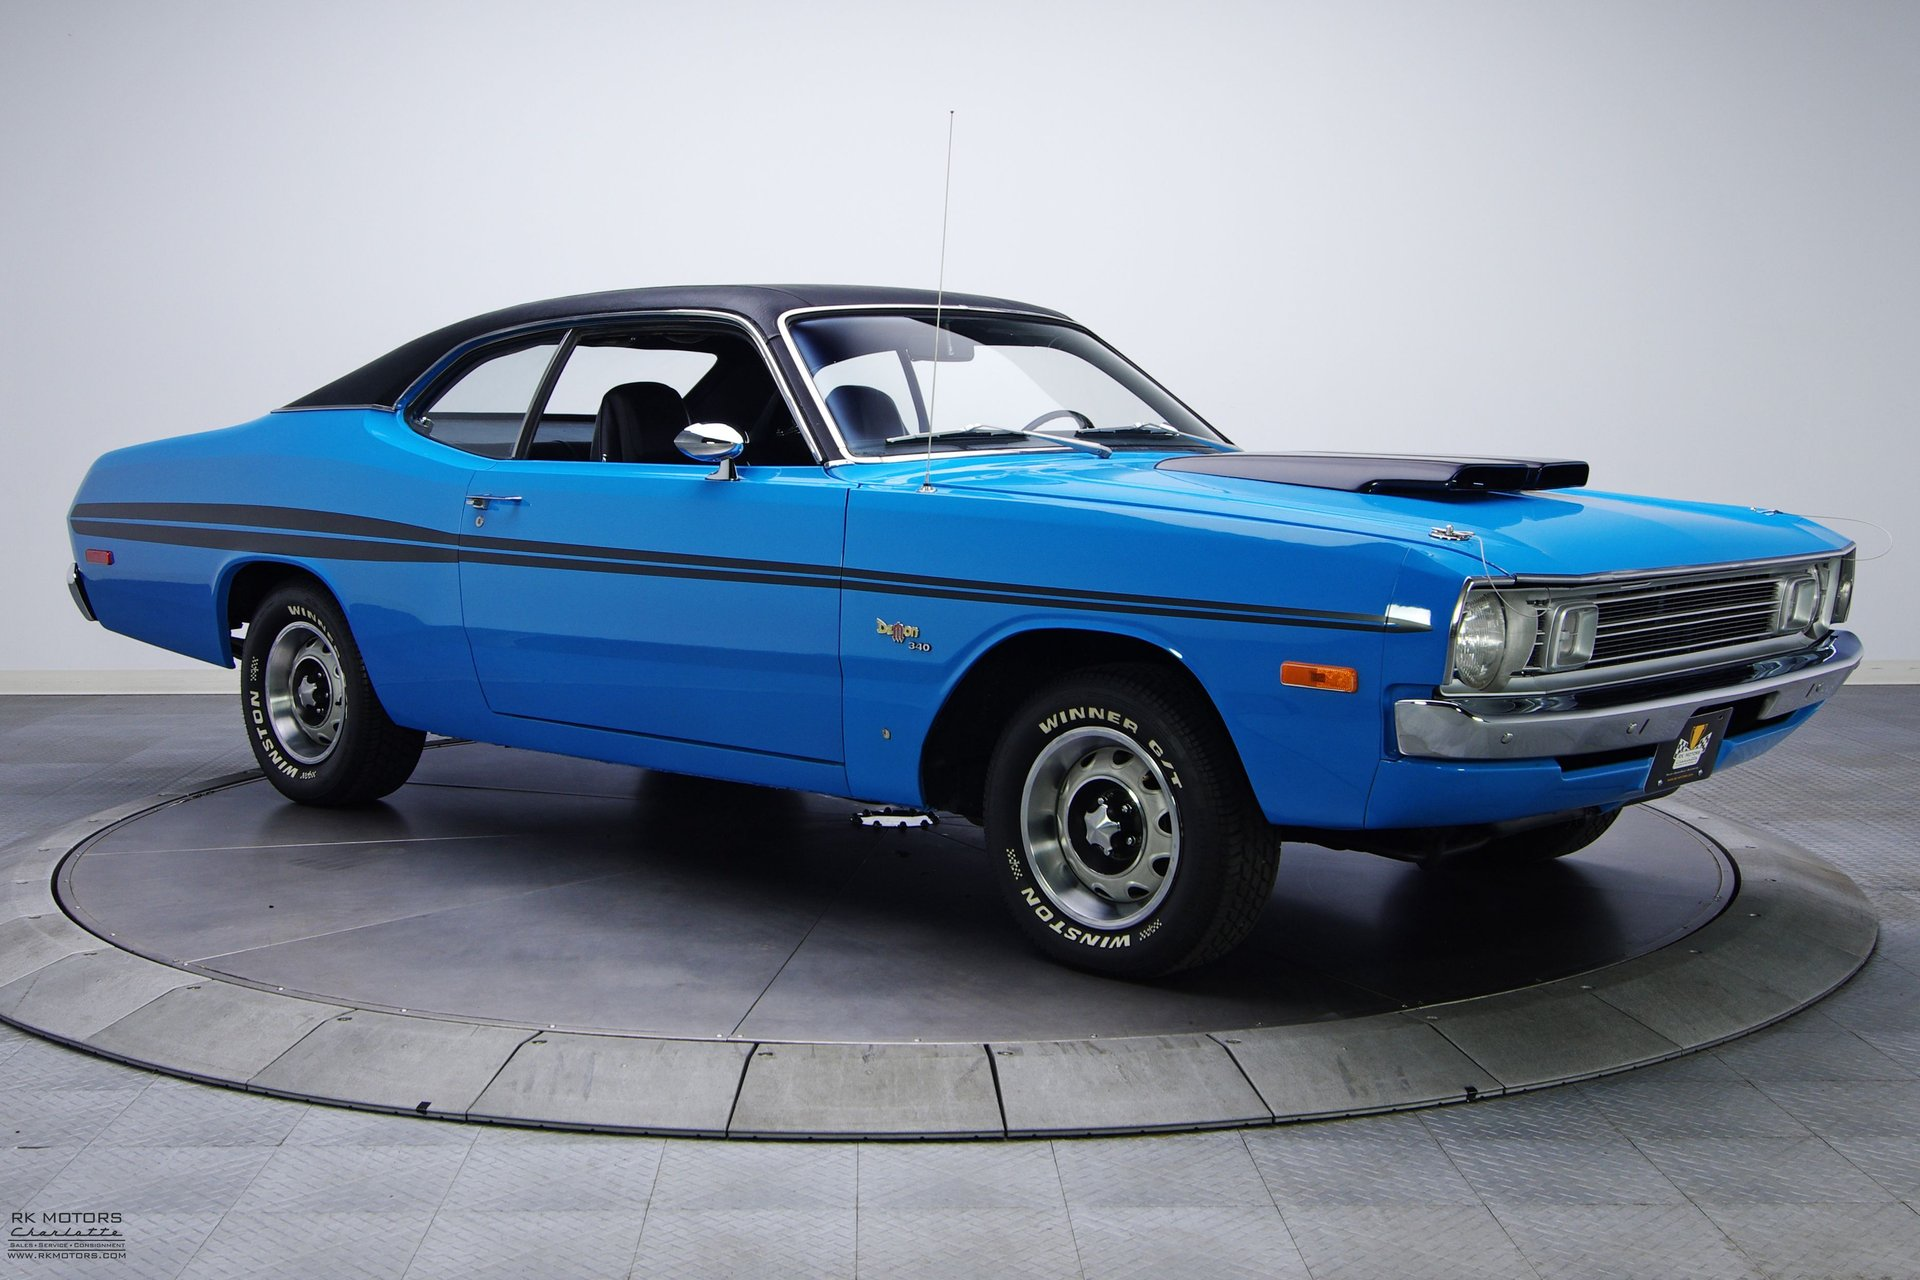 132620 1972 Dodge Demon RK Motors Classic Cars for Sale